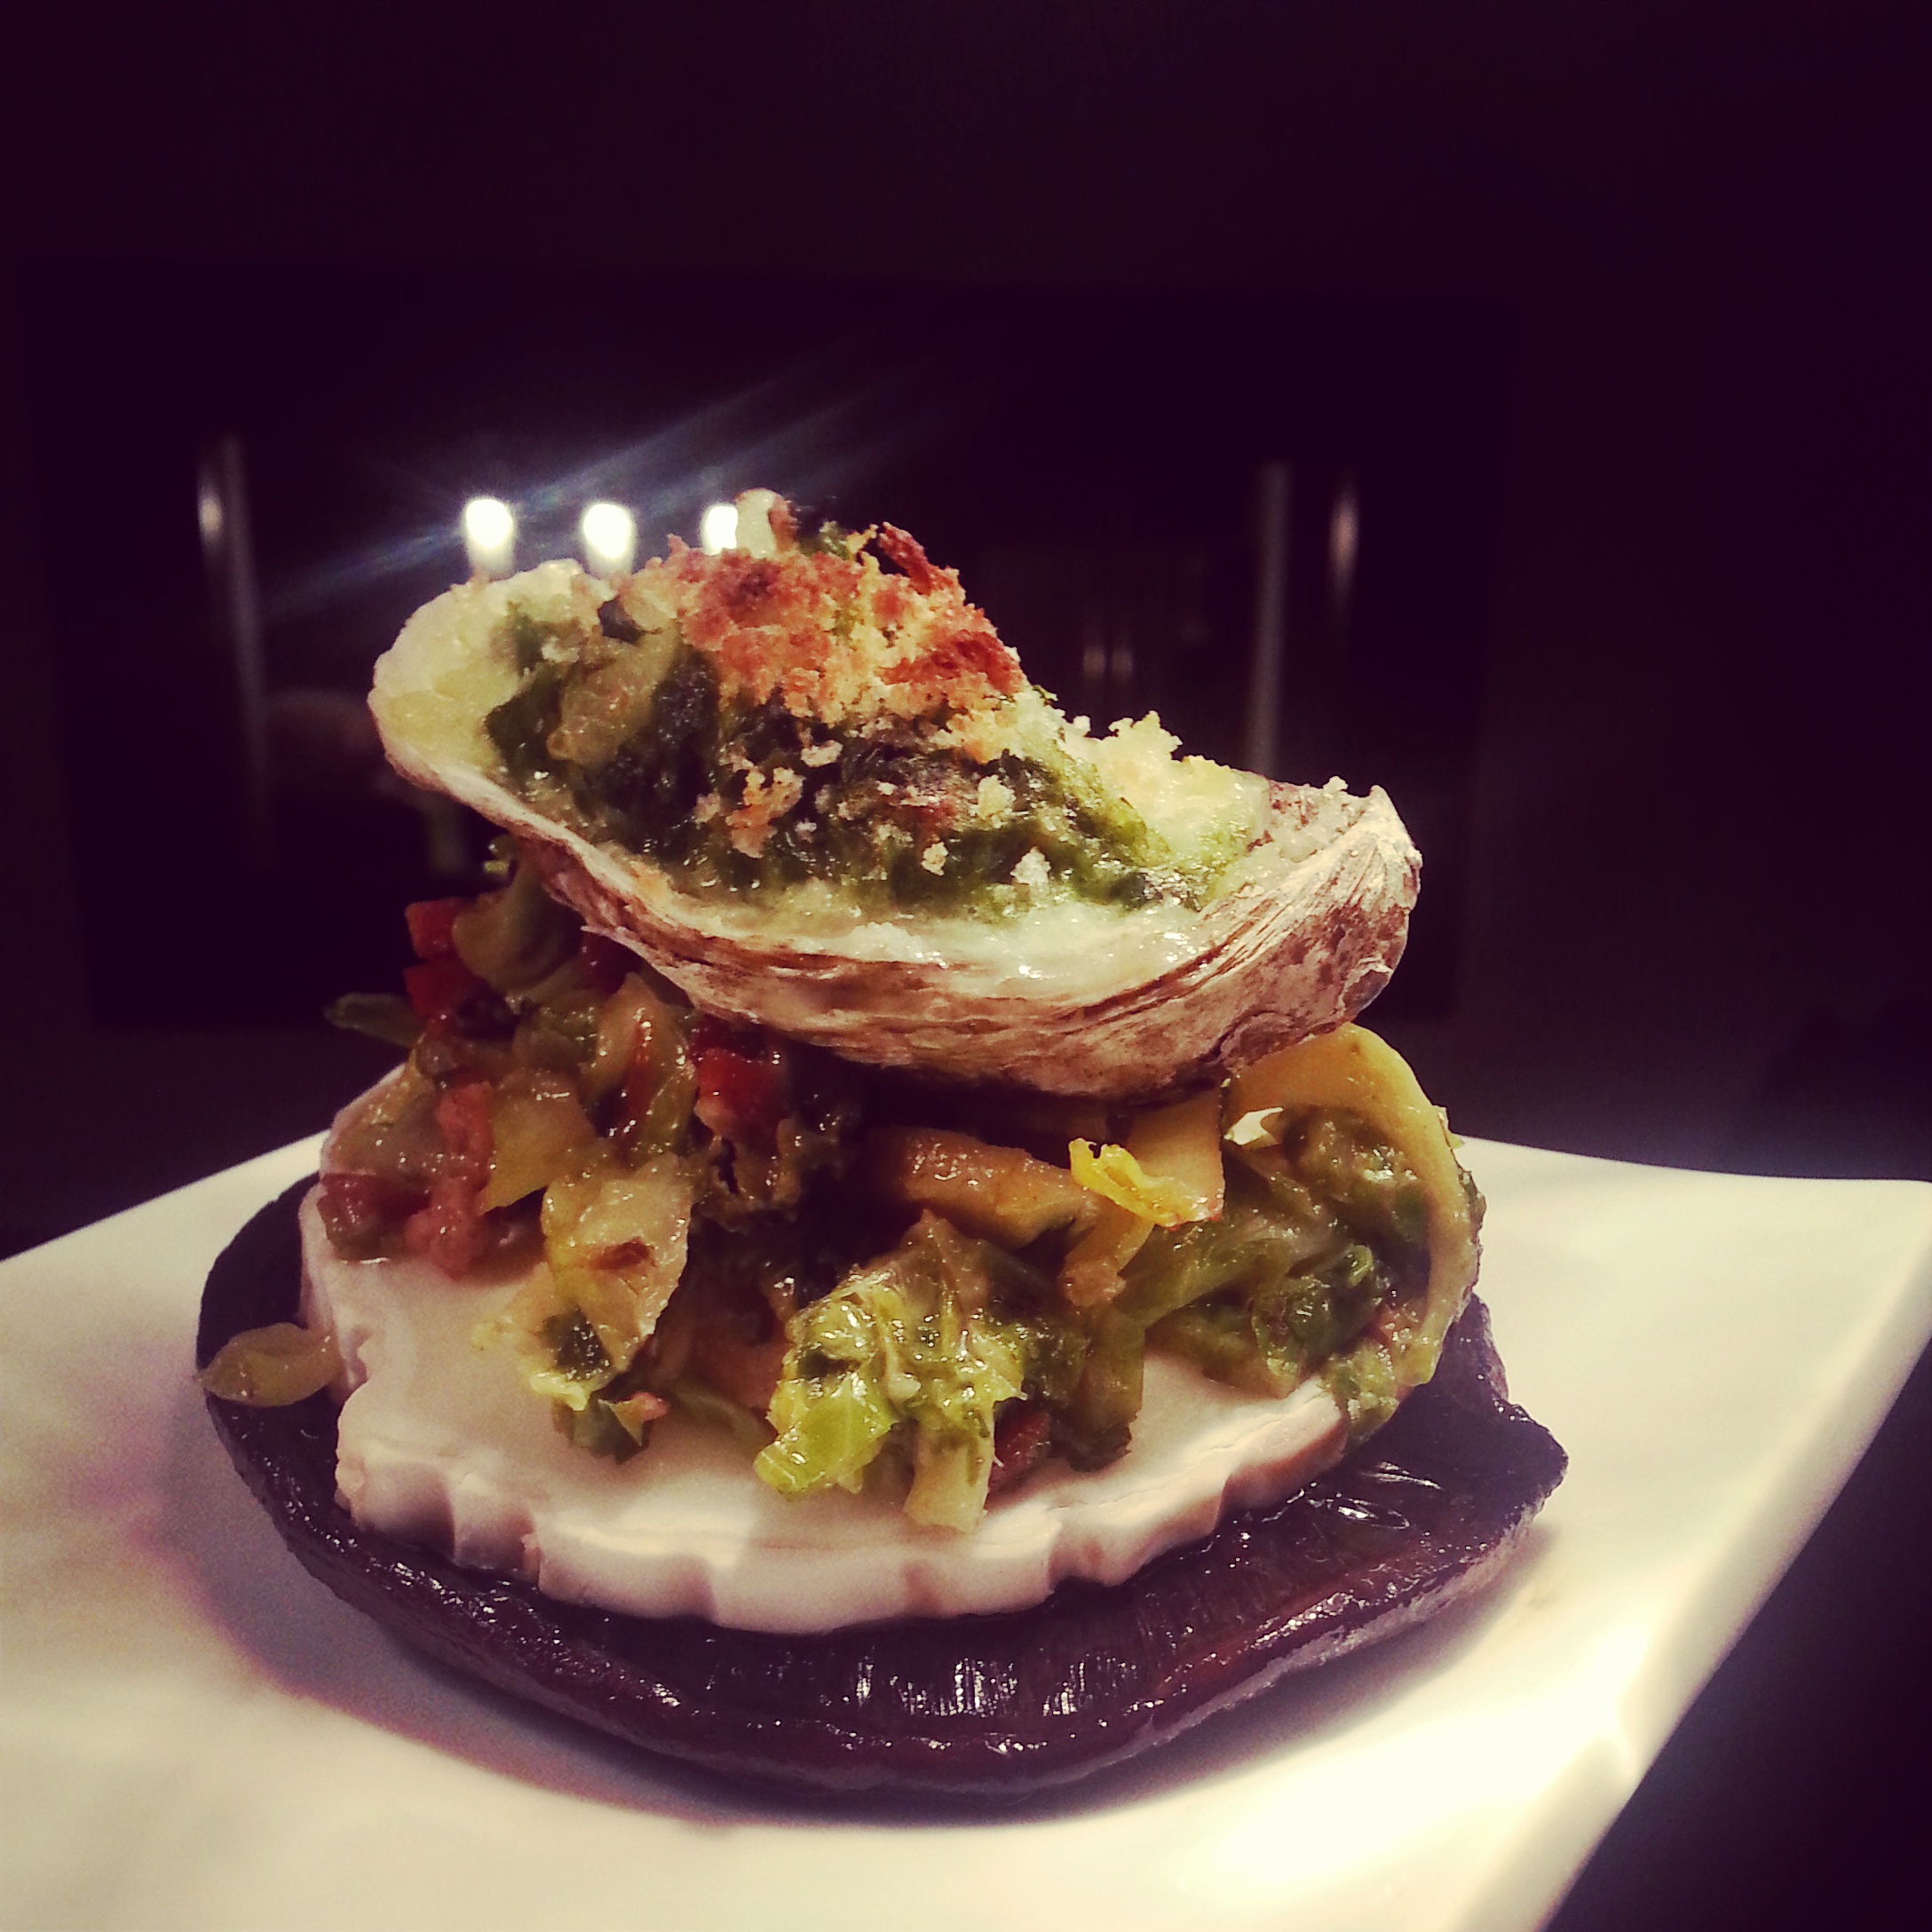 Rockefeller Oyster served on a Brussel Sprout Slaw with a Goat Cheese and Portobello Mushroom base.